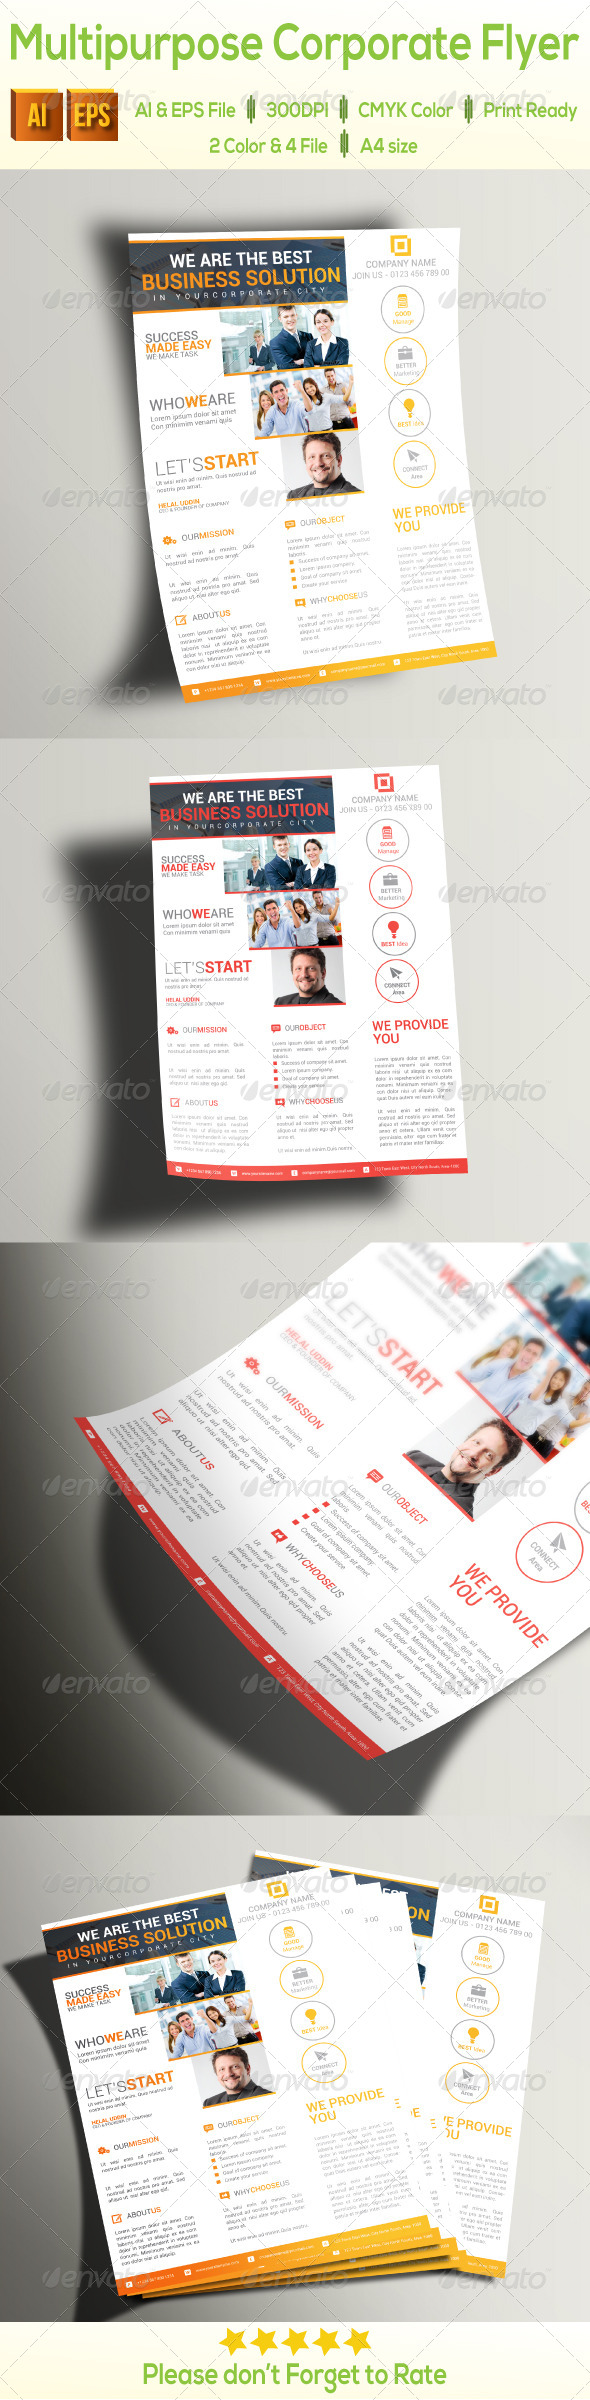 GraphicRiver Multipurpose Corporate Flyer 8325194